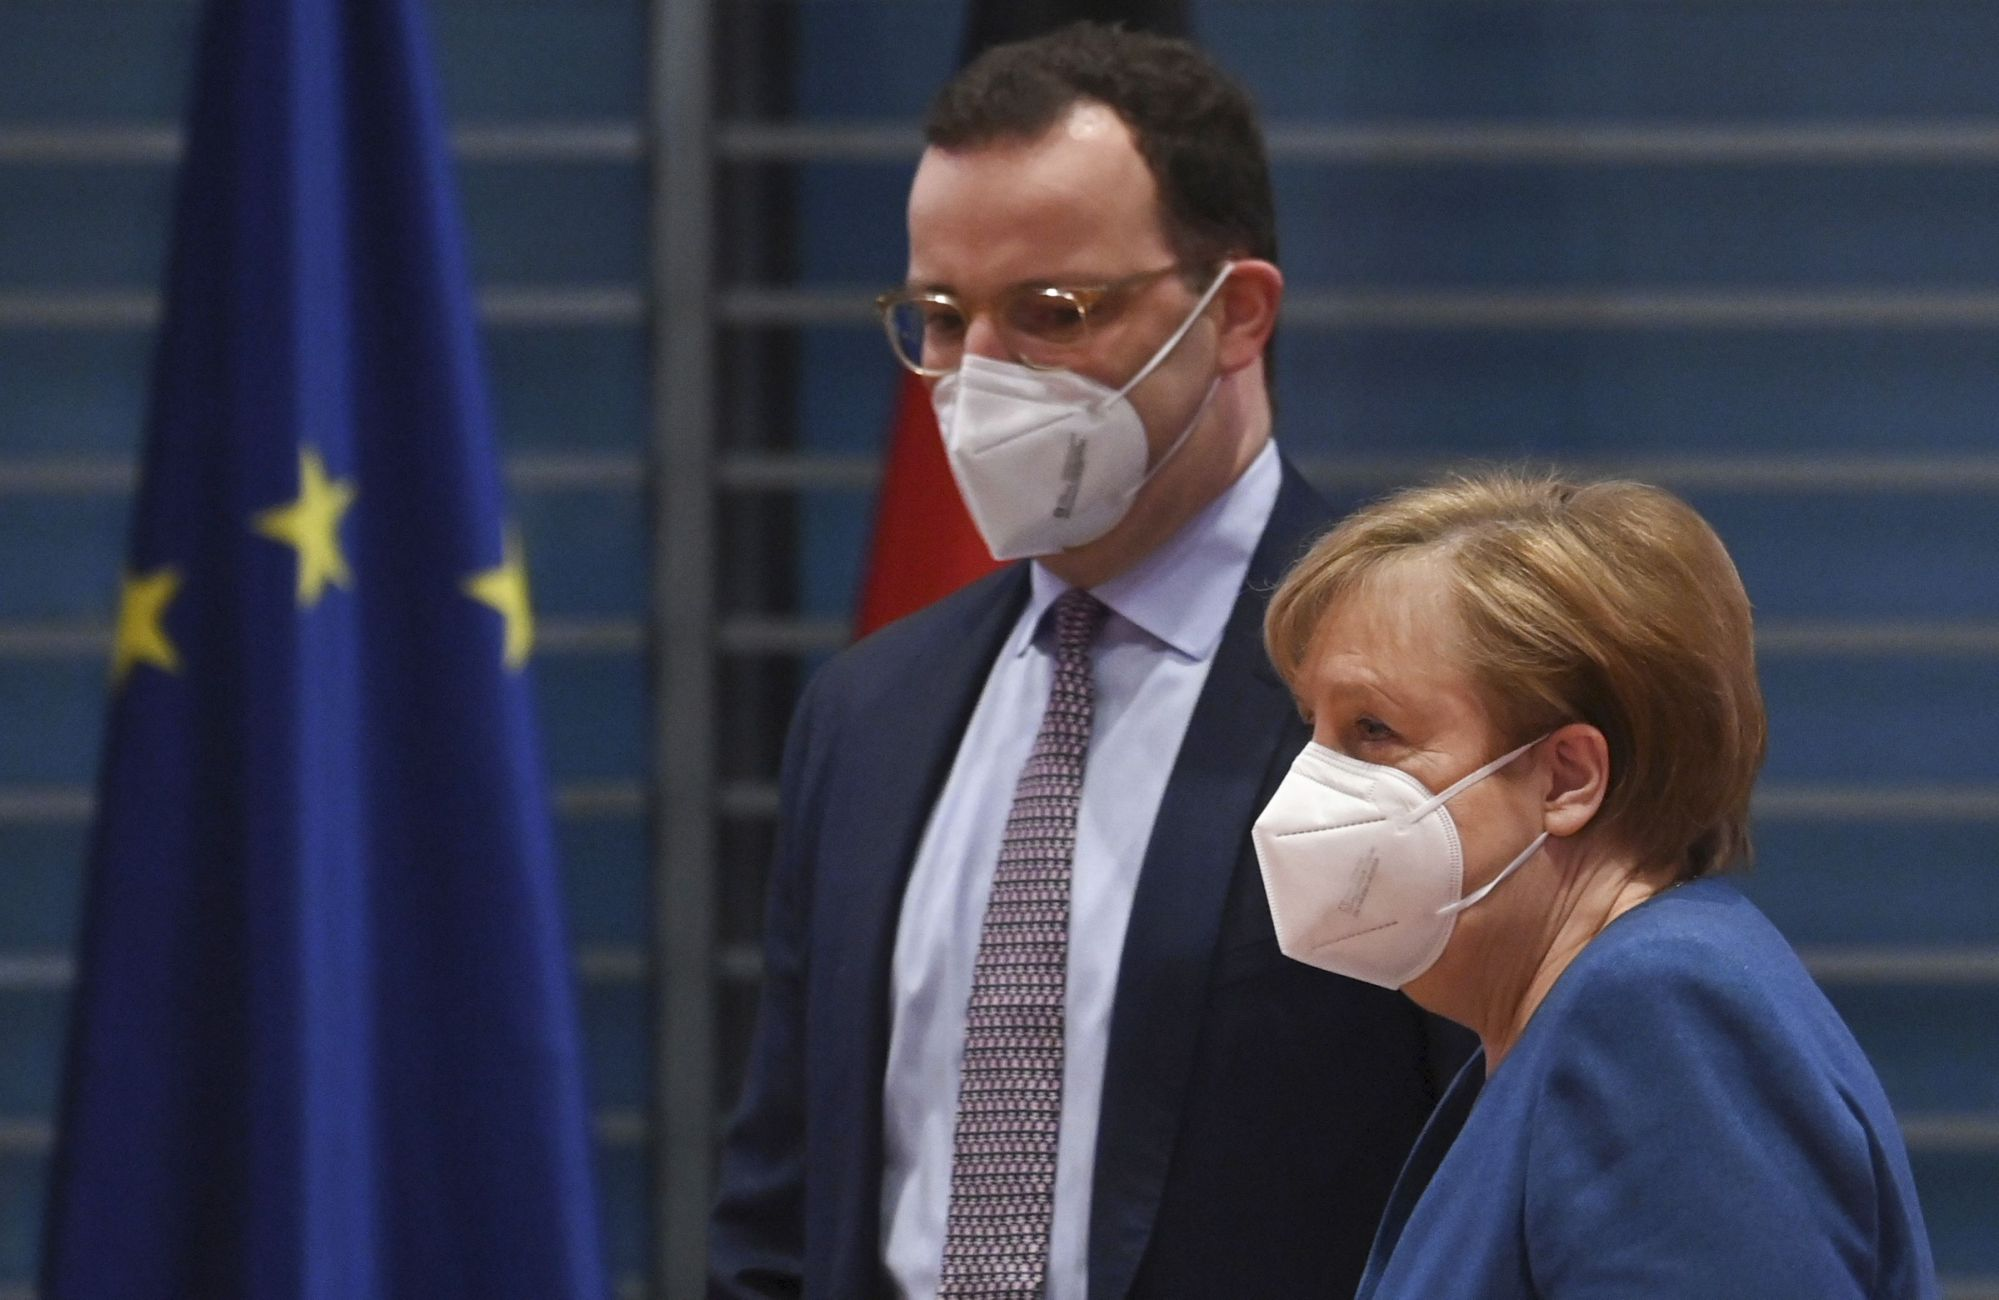 Virus collides with politics as German election year starts